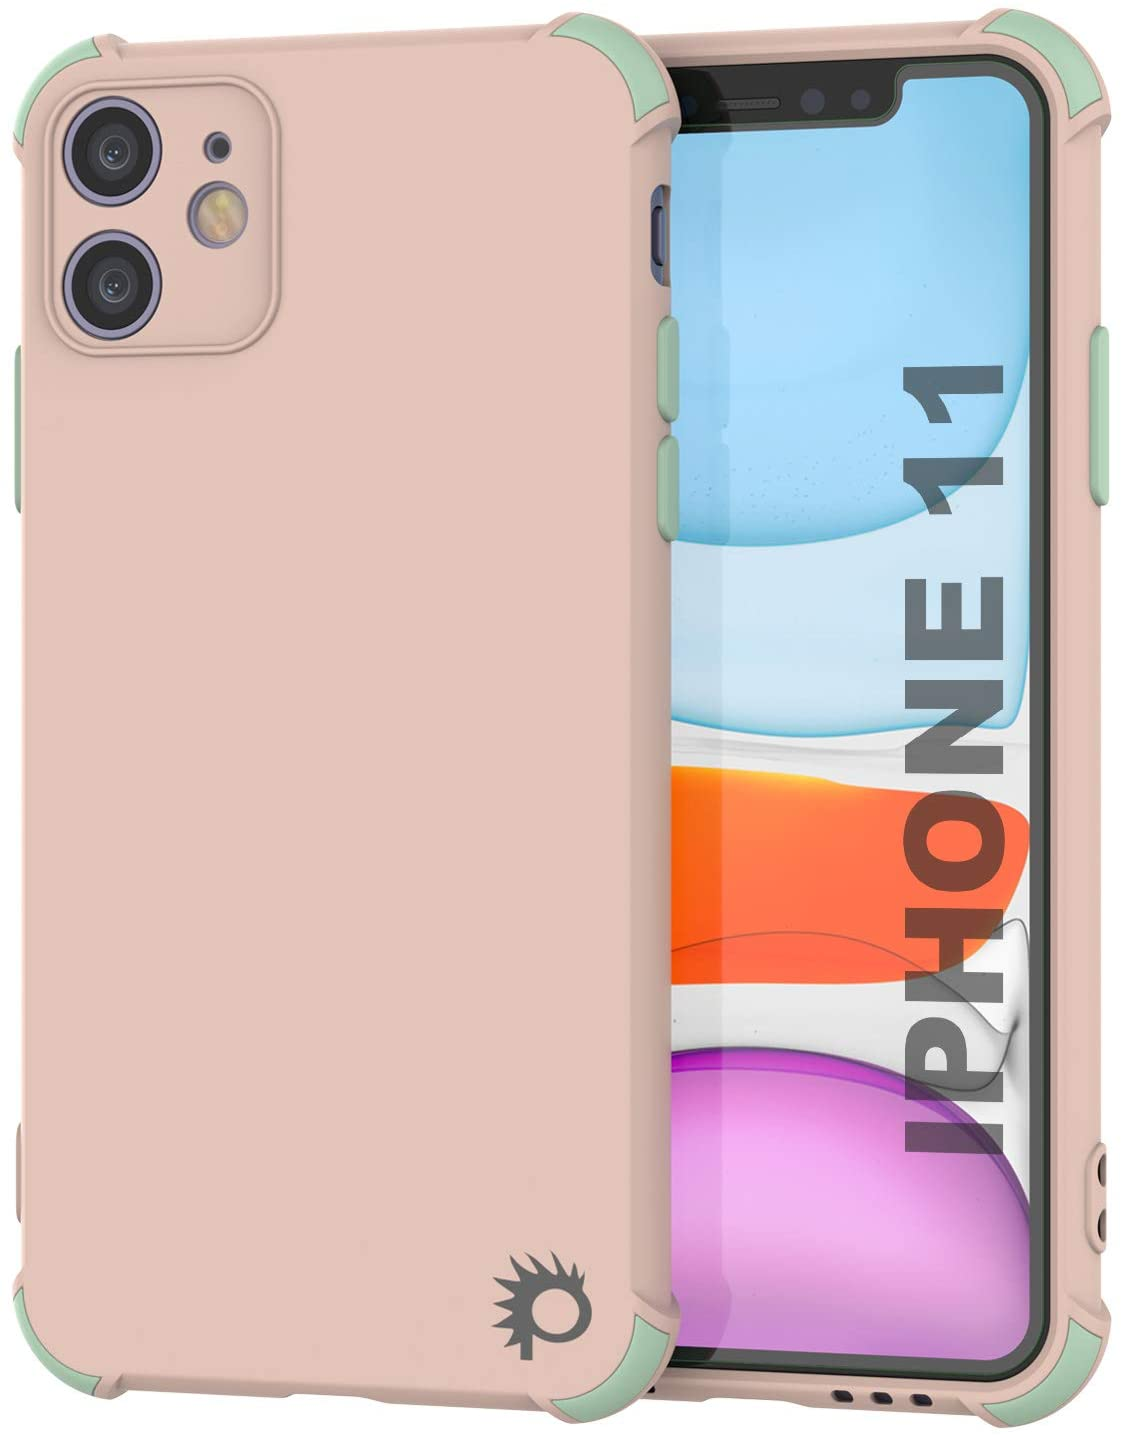 Punkcase Protective & Lightweight TPU Case [Sunshine Series] for iPhone 11 [Pink]